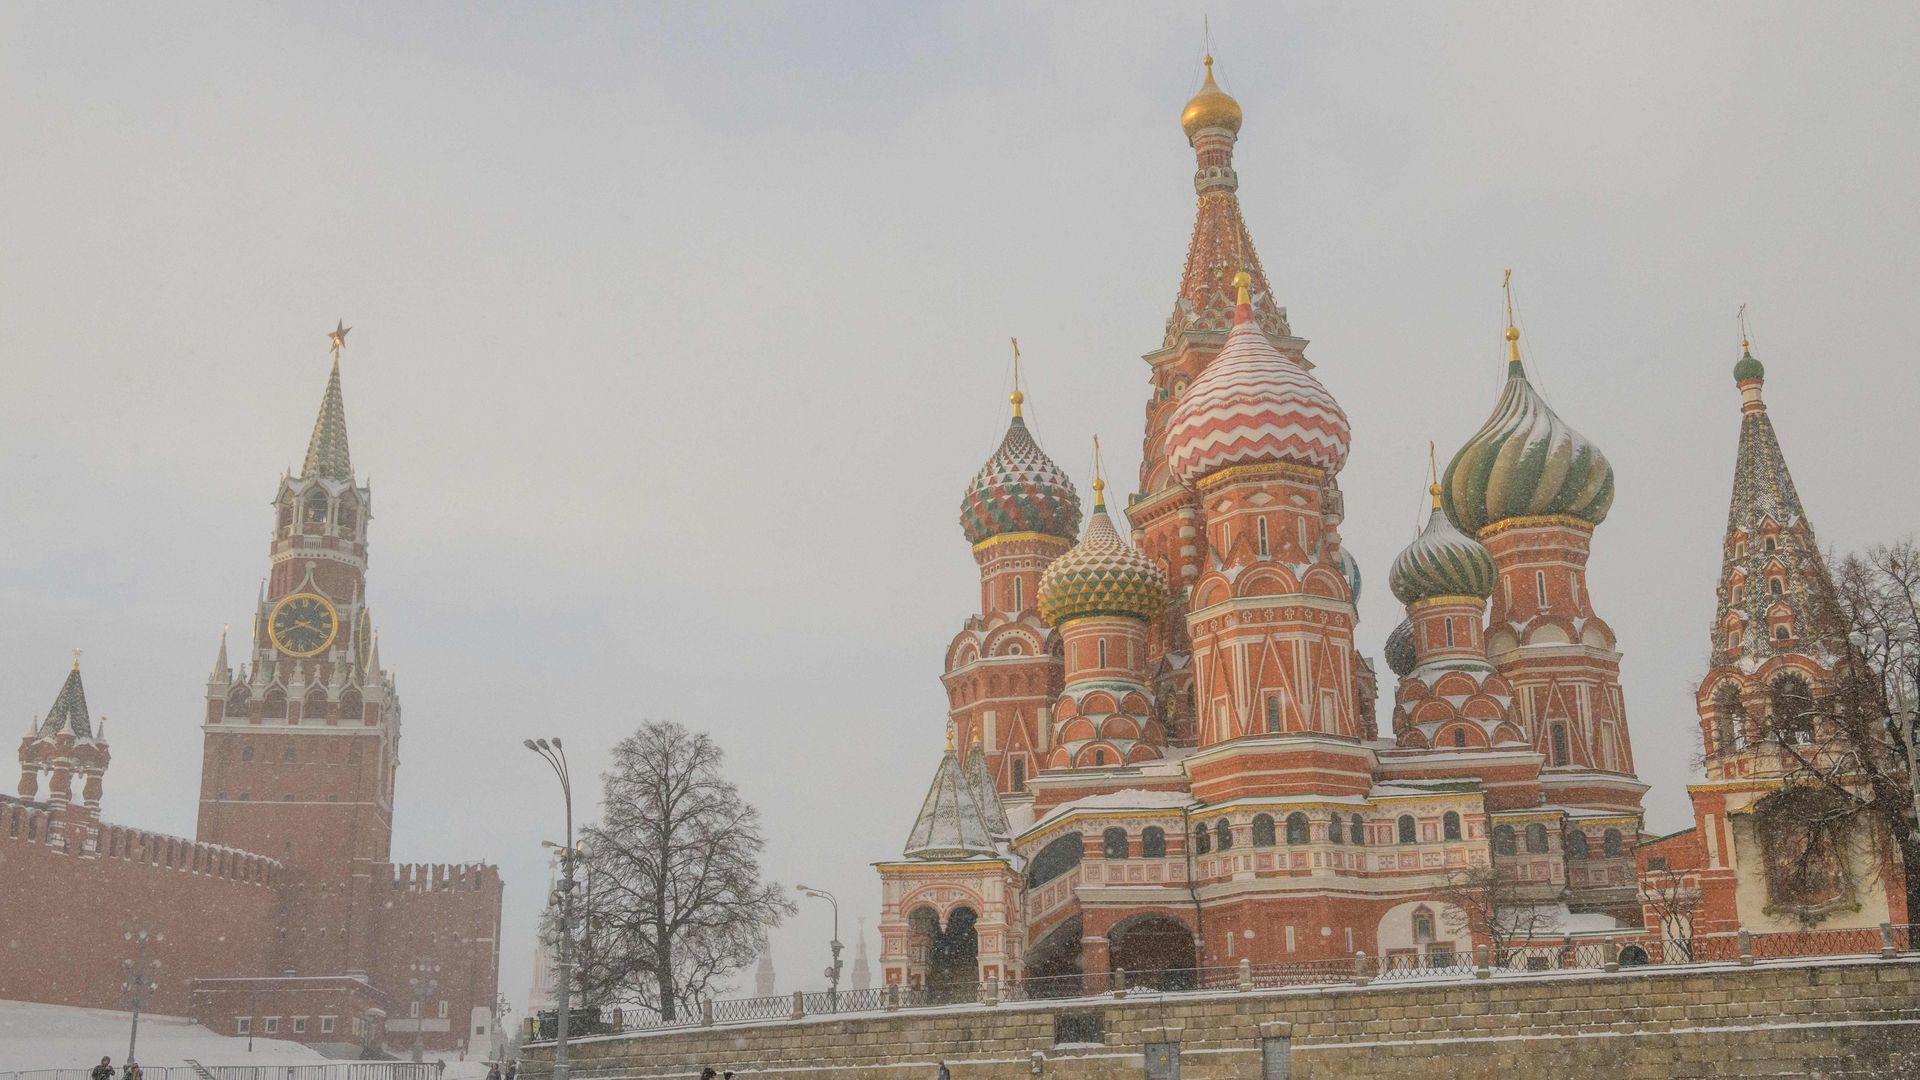 St. Basil's Cathedral and the Kremlin in the snow.